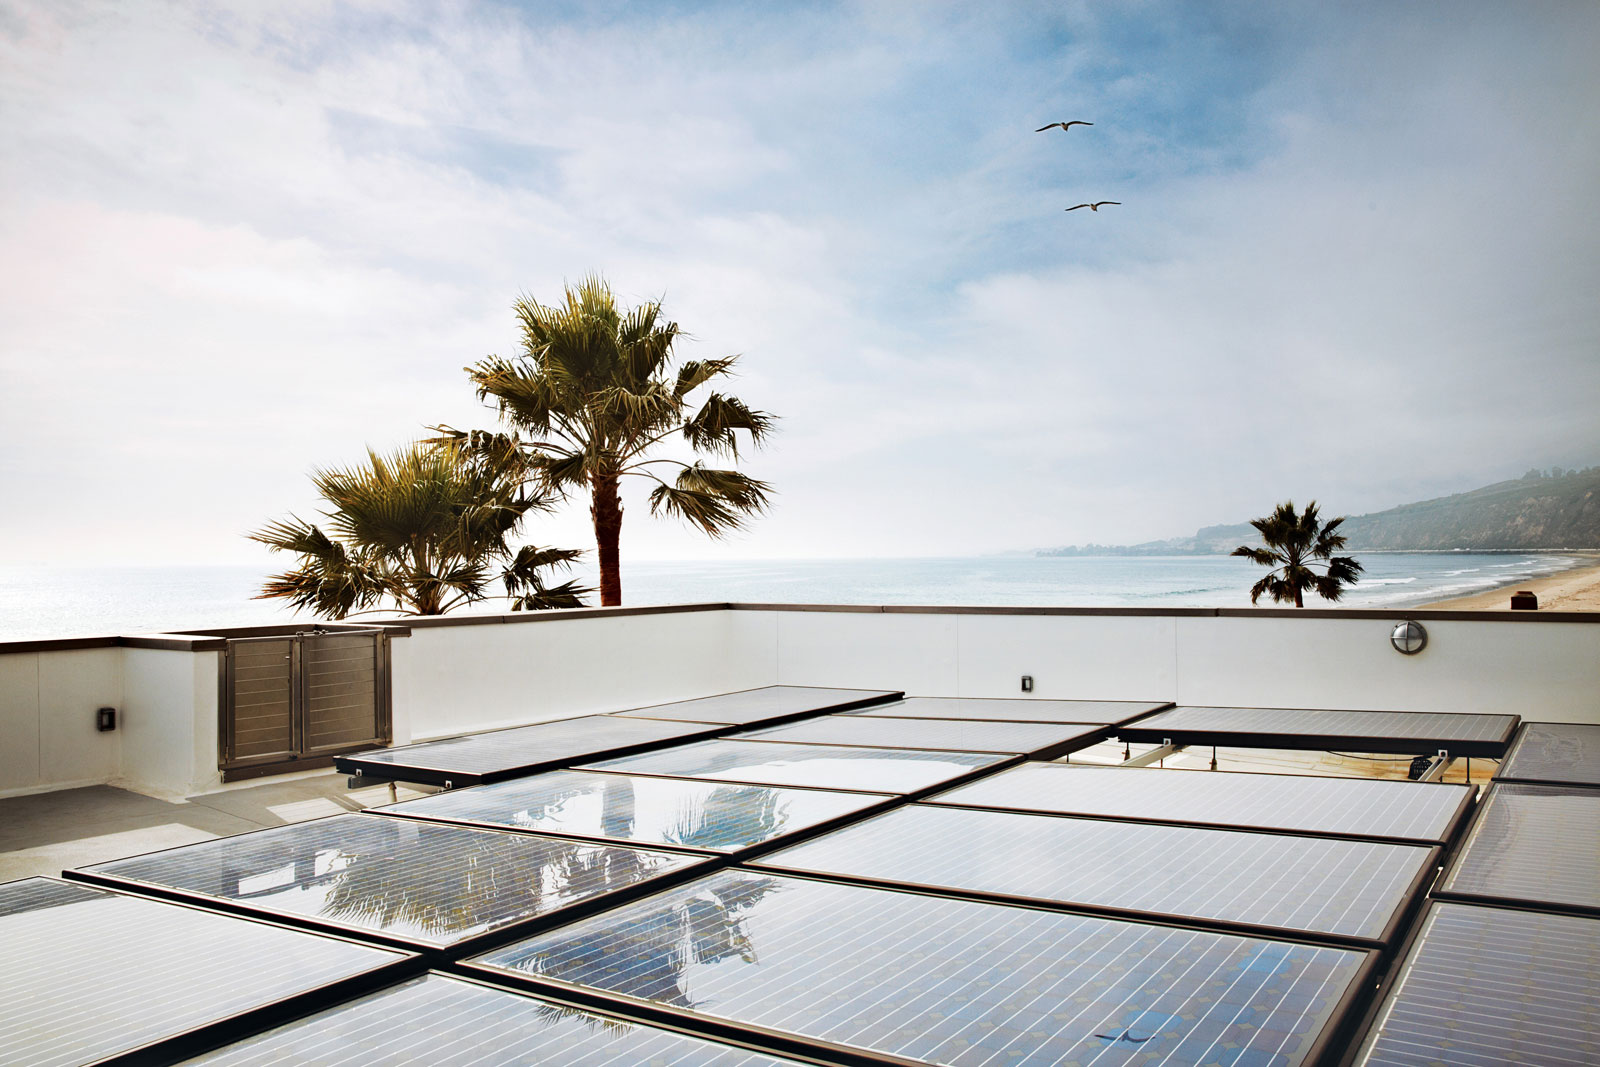 Roof, Solar Panels, Eco-Friendly Beach House in California